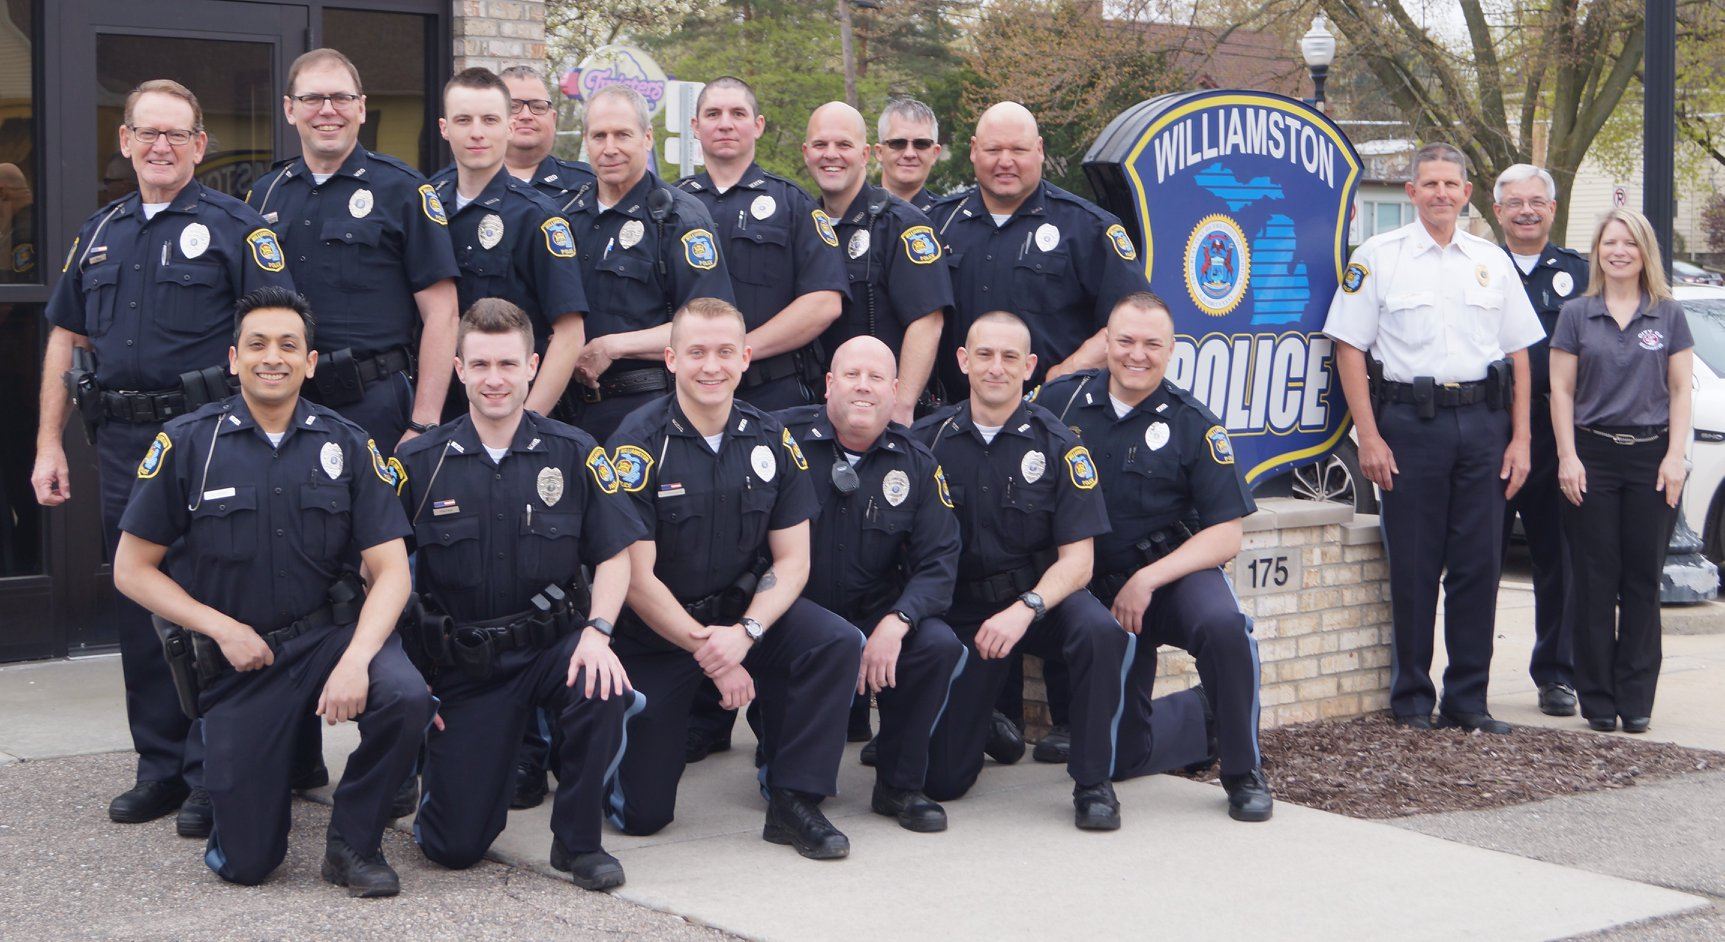 Williamston City Departments Police Department